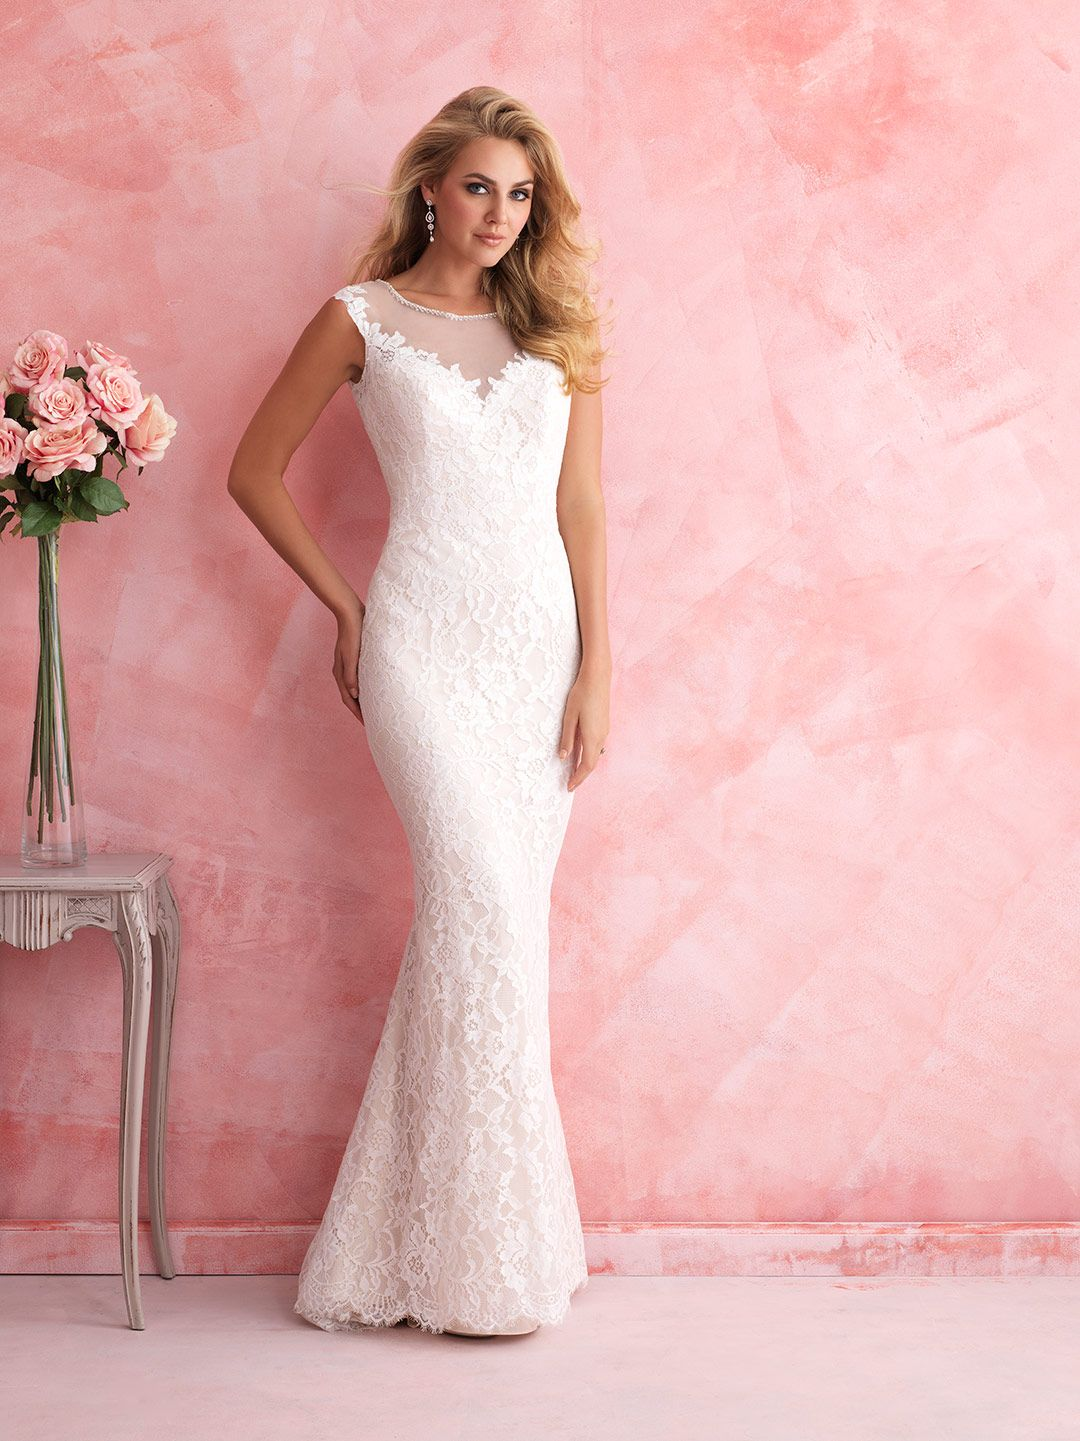 Allure Romance style 2812 - Lace sheath gown with sheer illusion ...